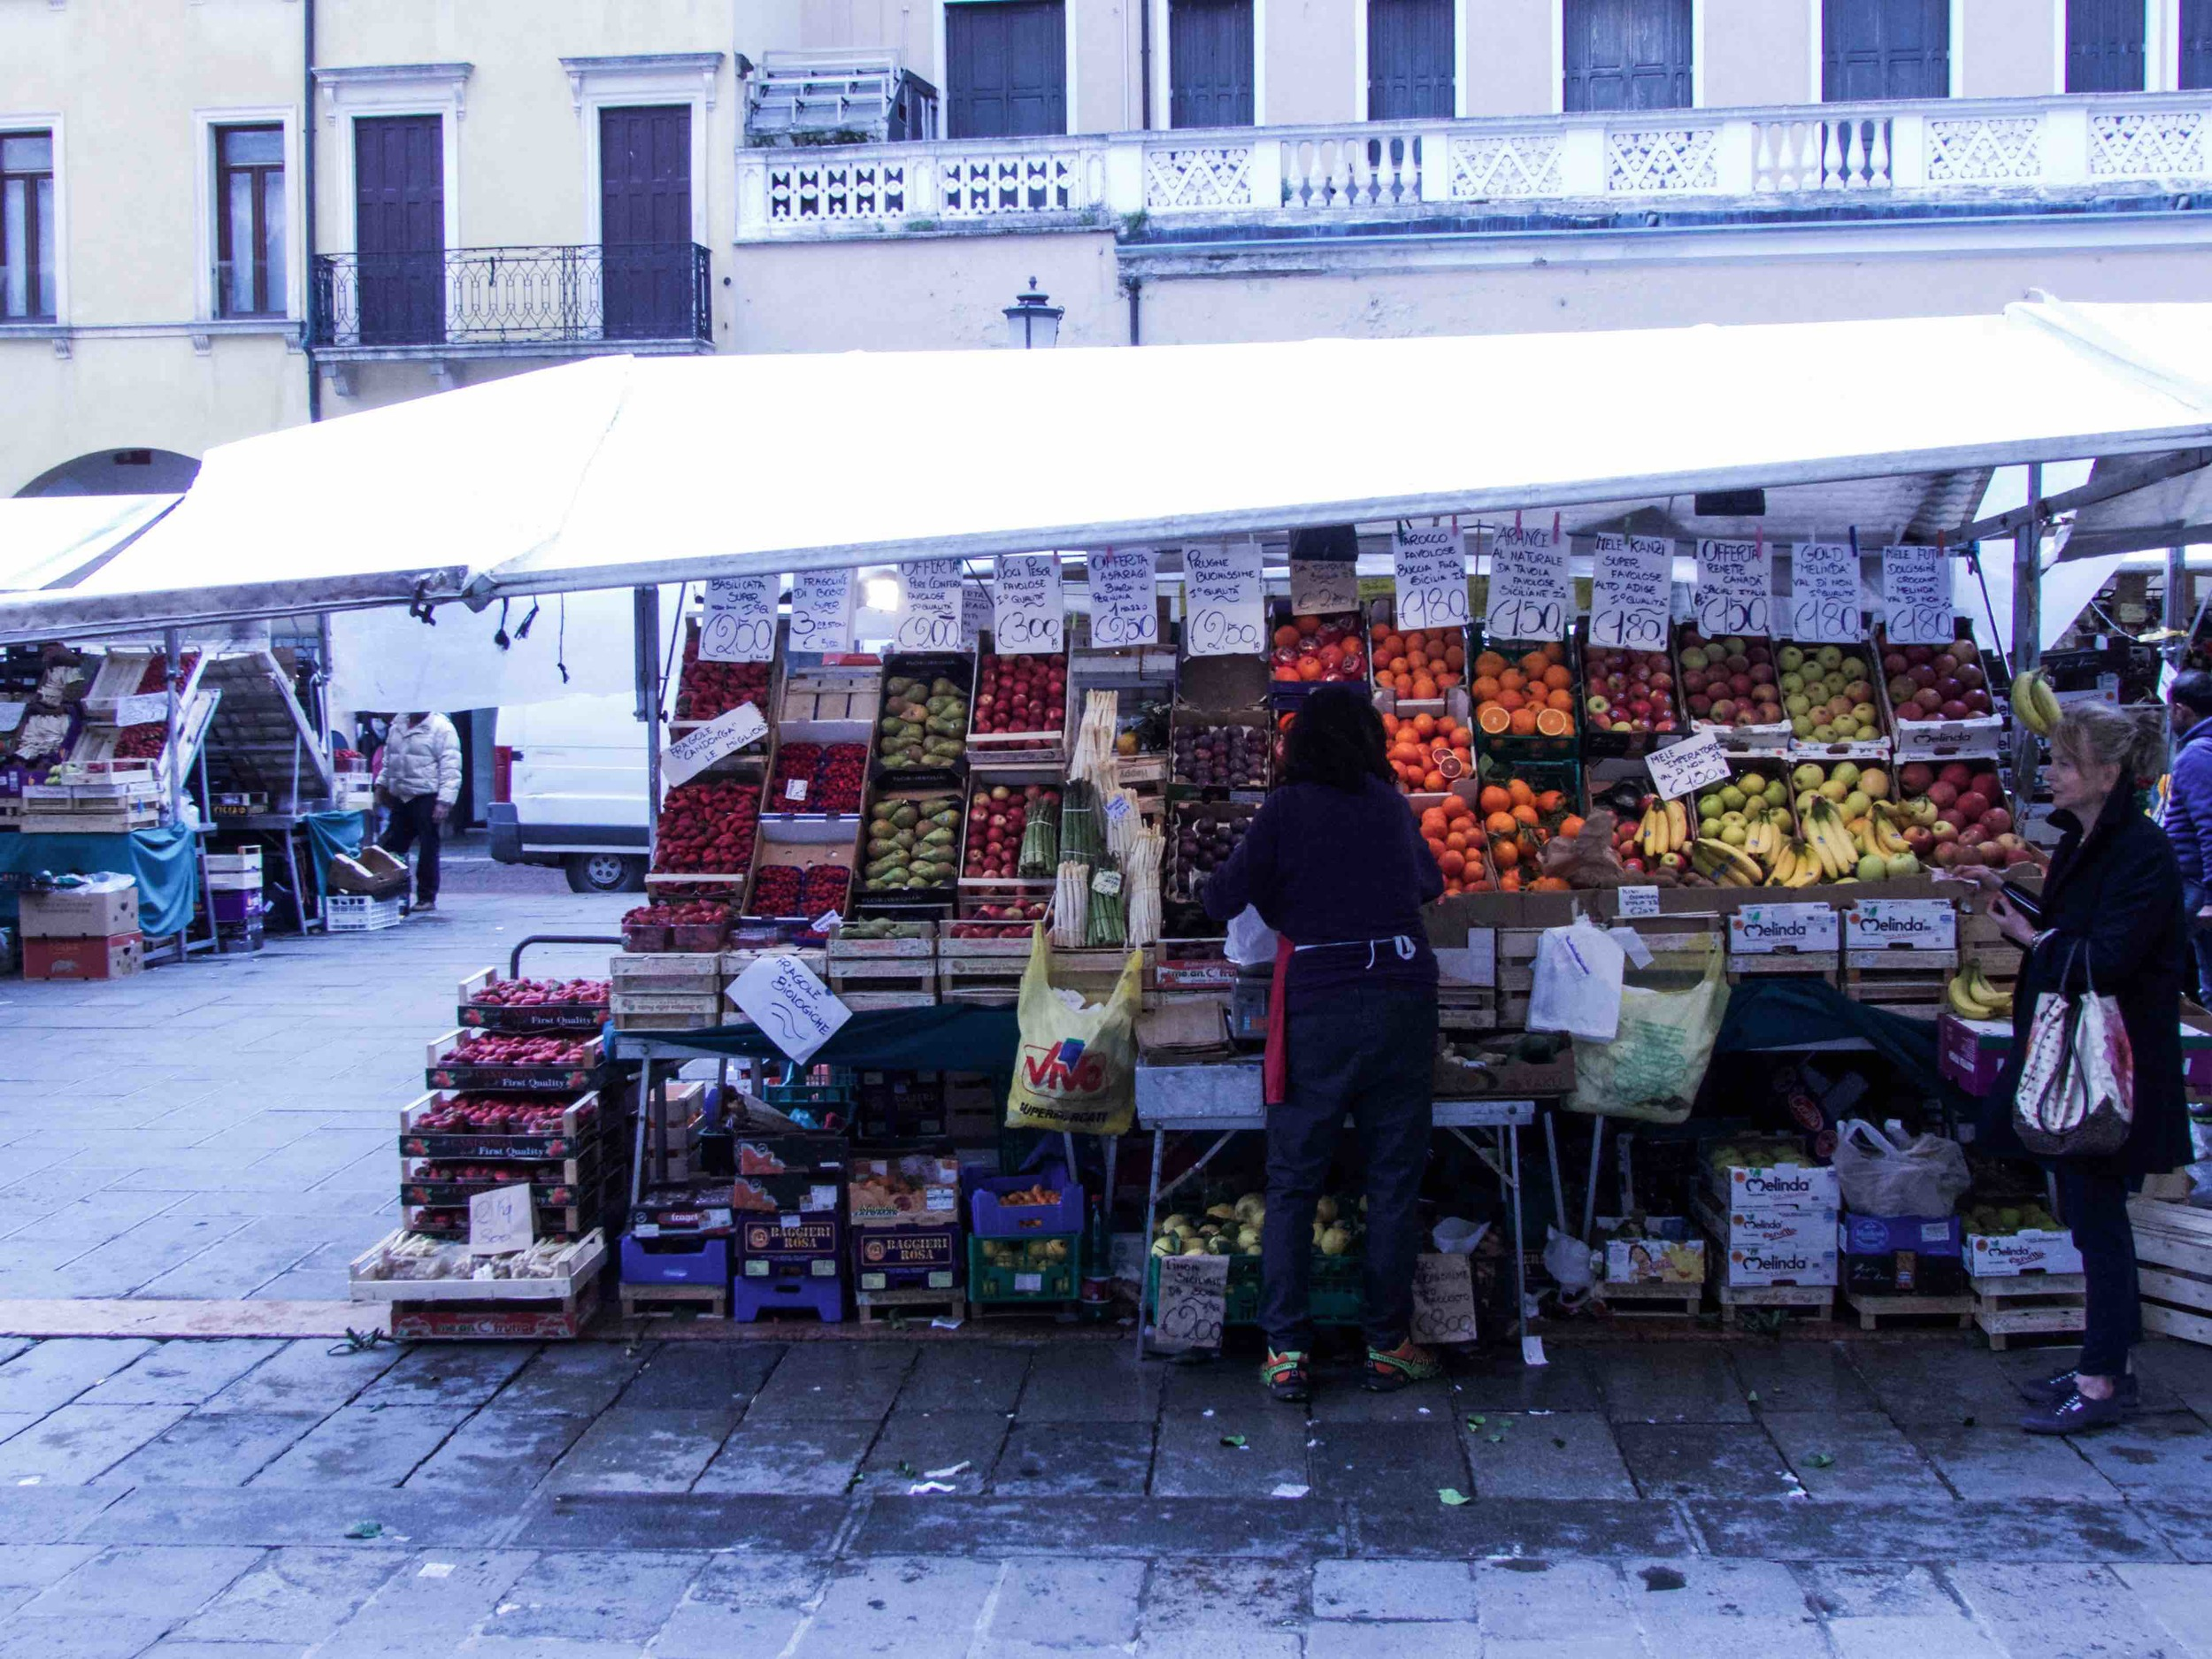 Vendors set up shop every morning but Sunday. So if you want to get some ultra-fresh produce, better get there before noon. :)